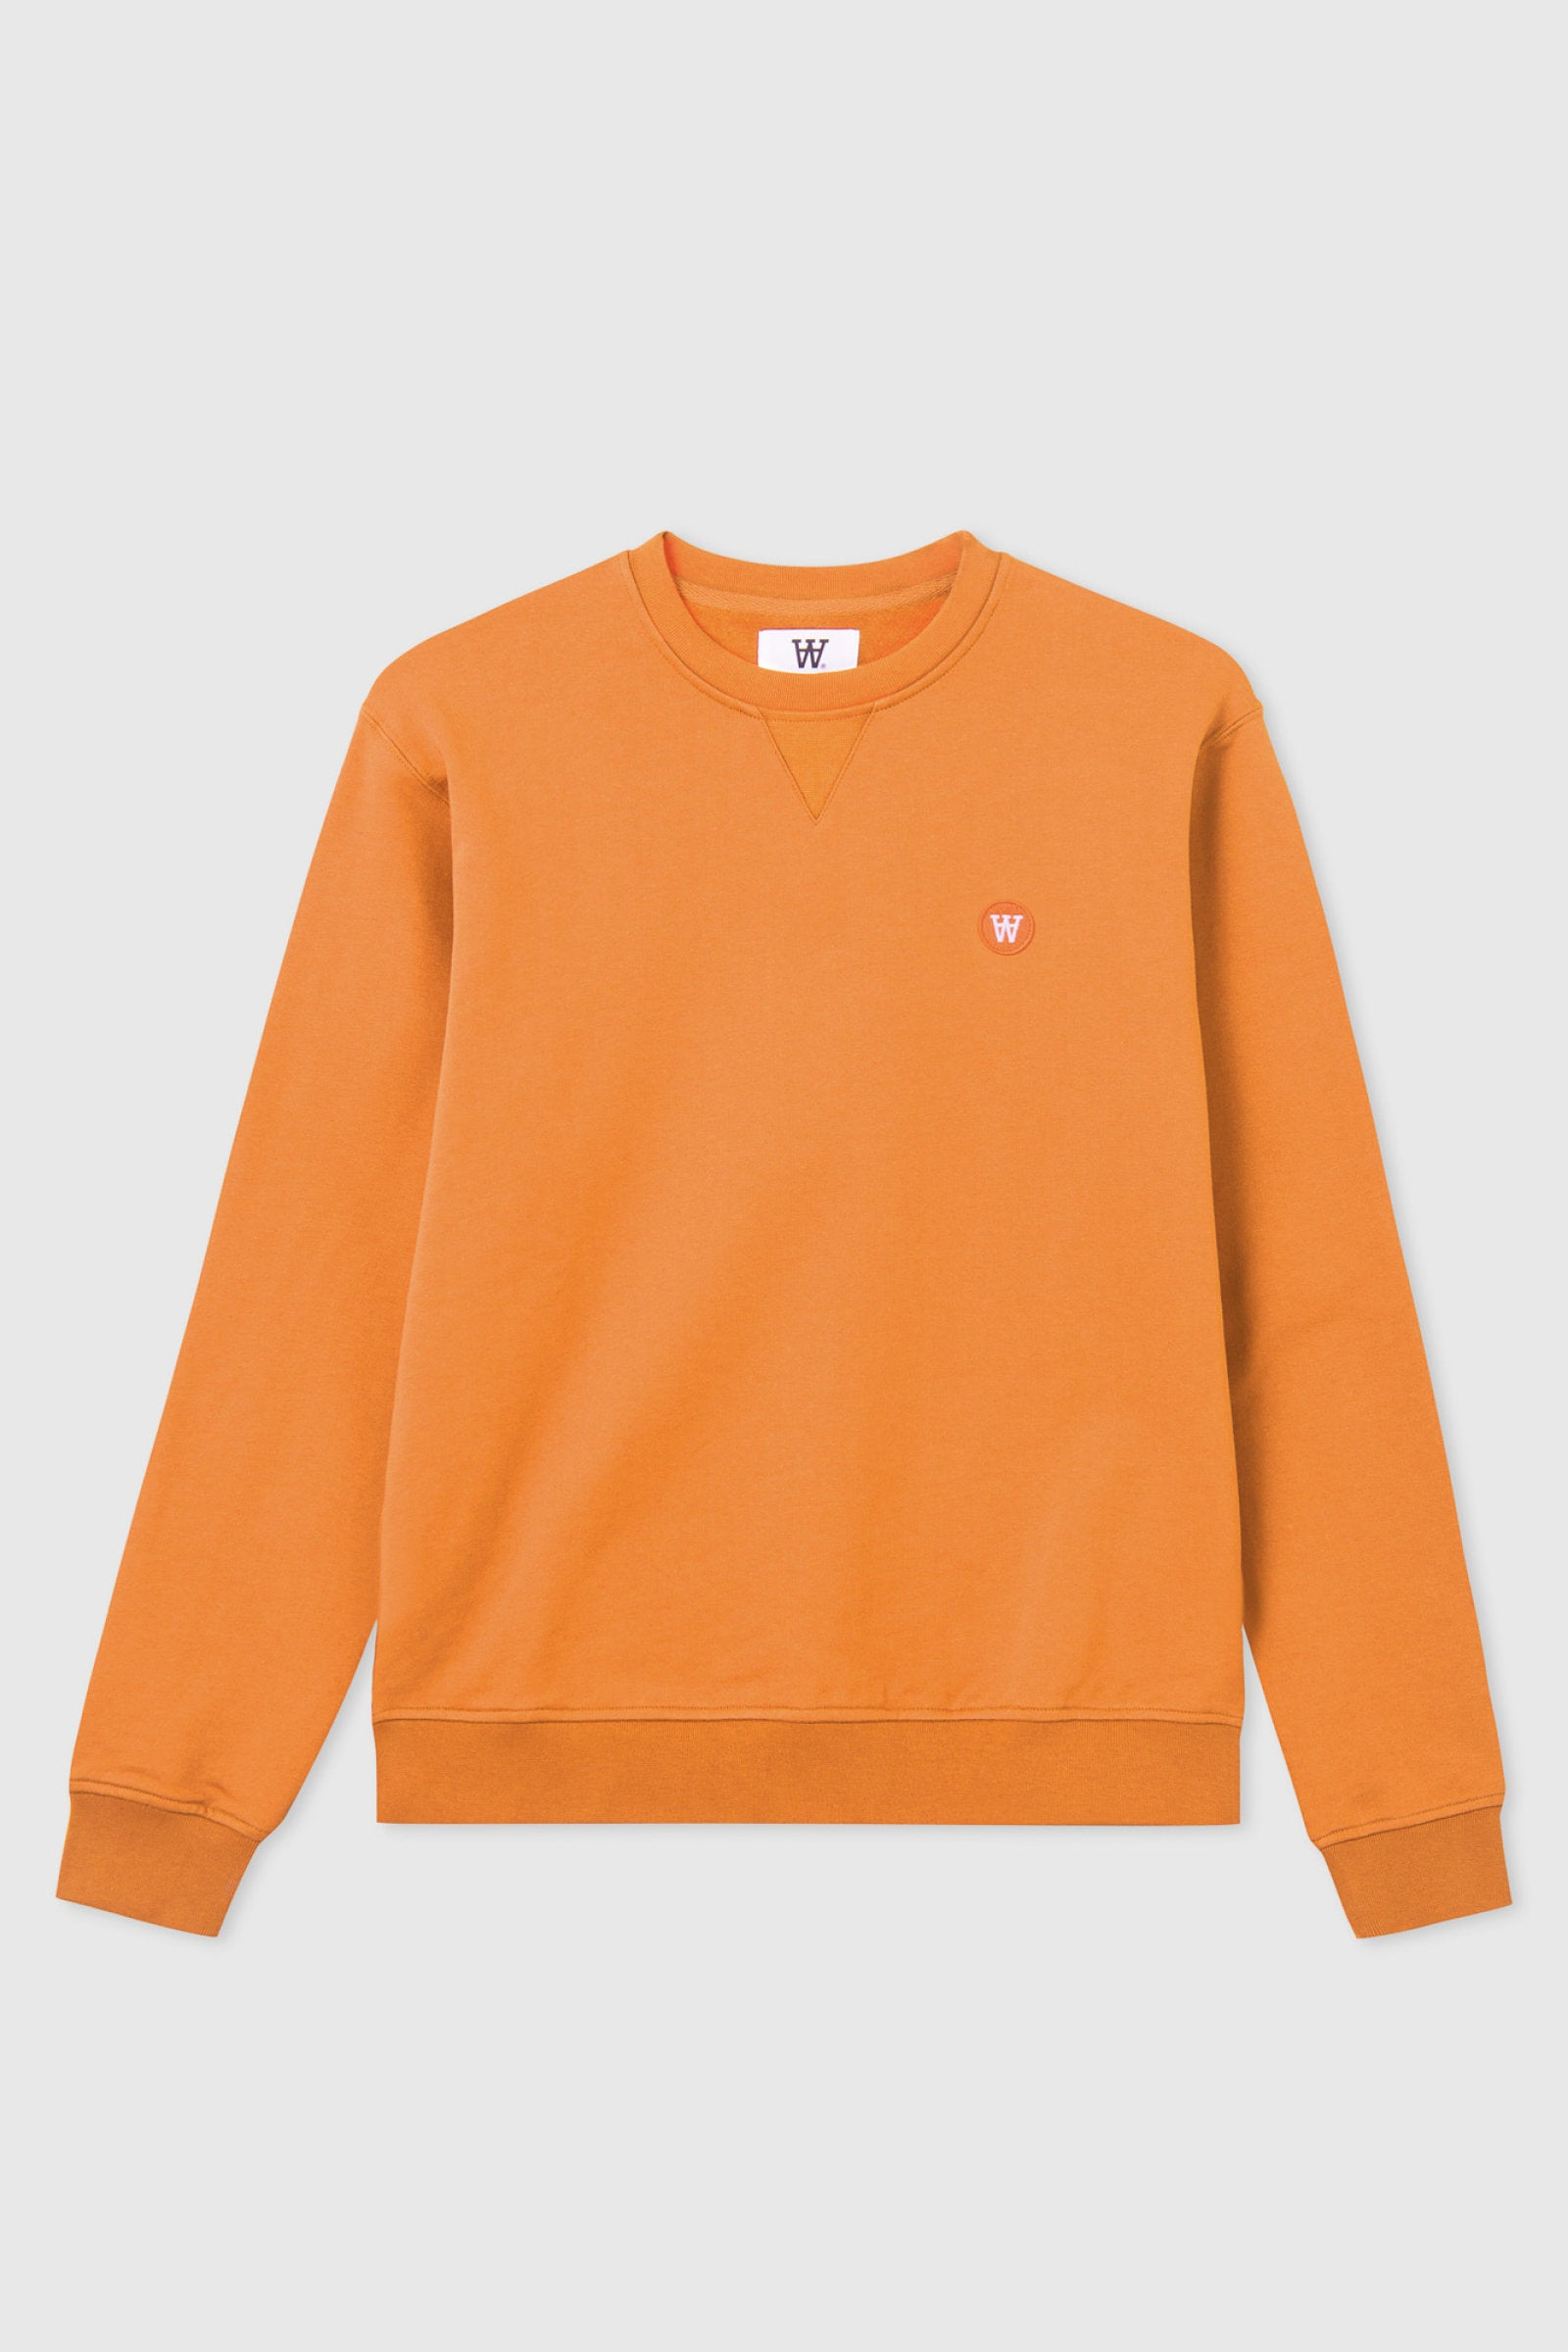 Tye Sweatshirt Orange